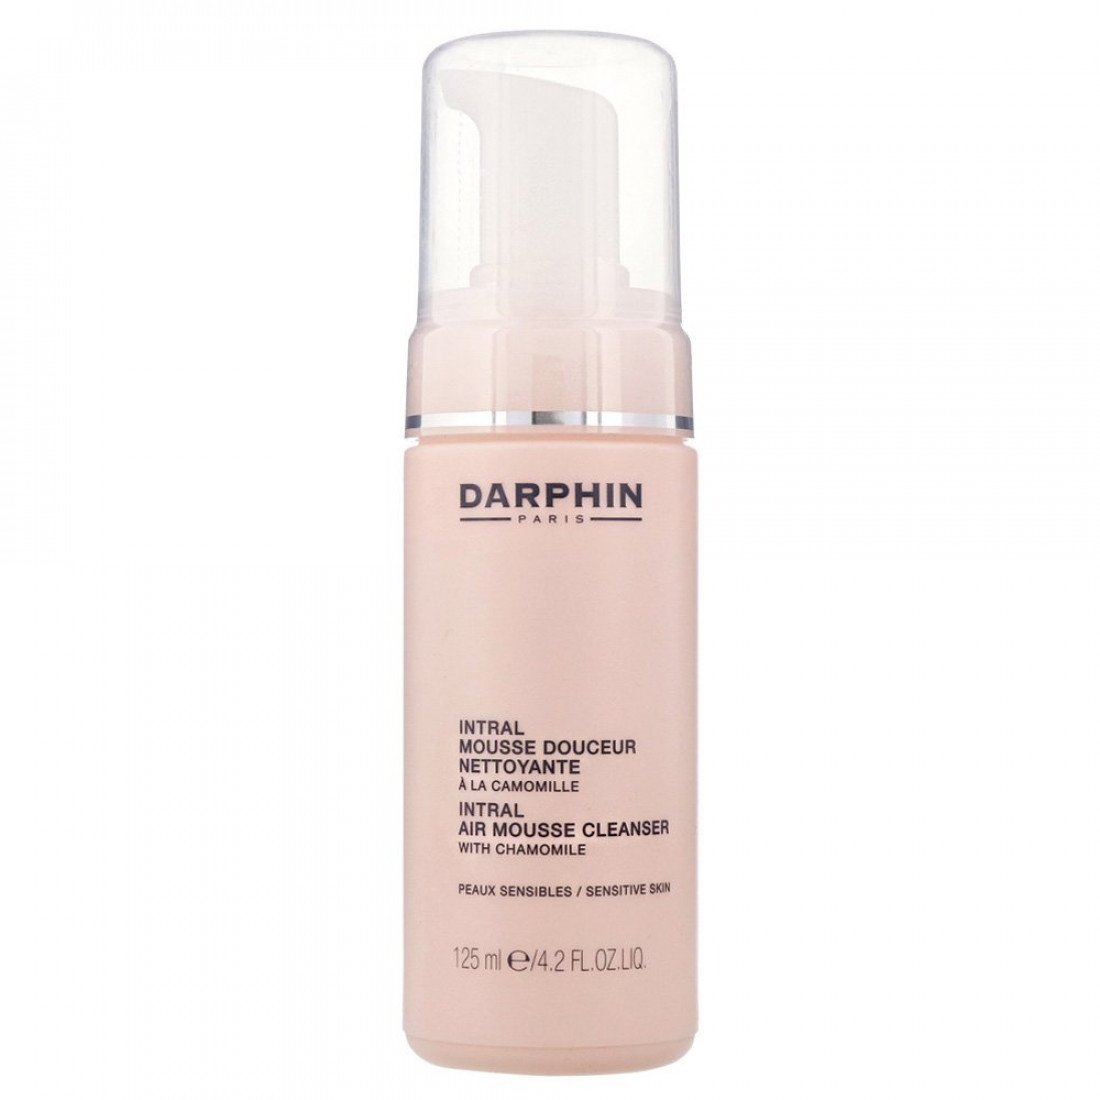 Darphin, Intral air mousse cleanser